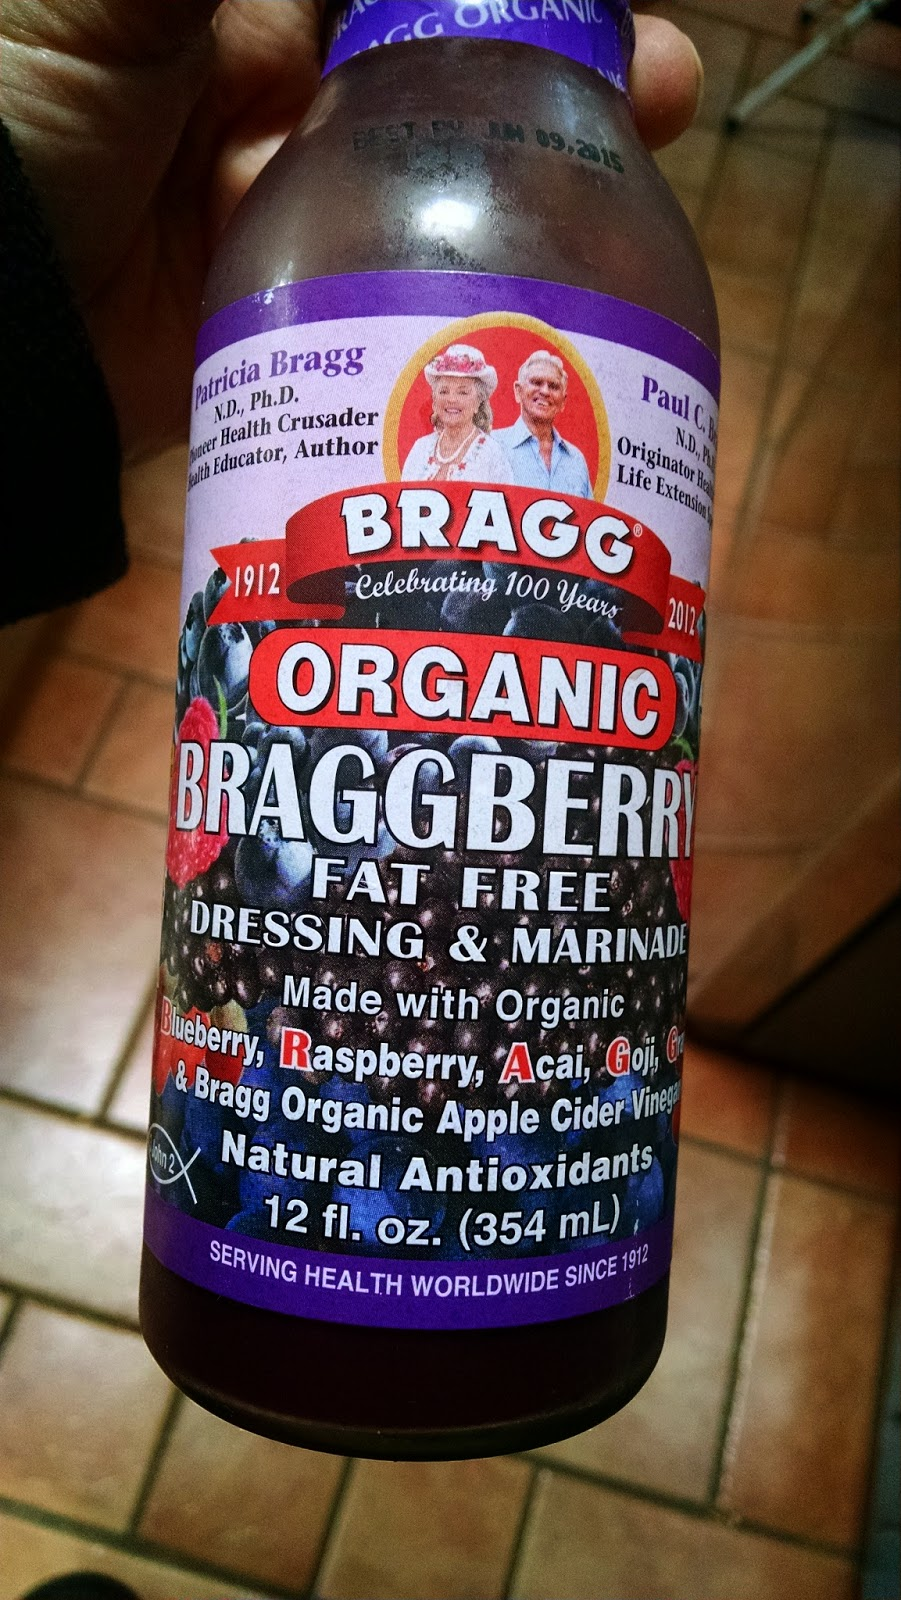 Braggberry Dressing!